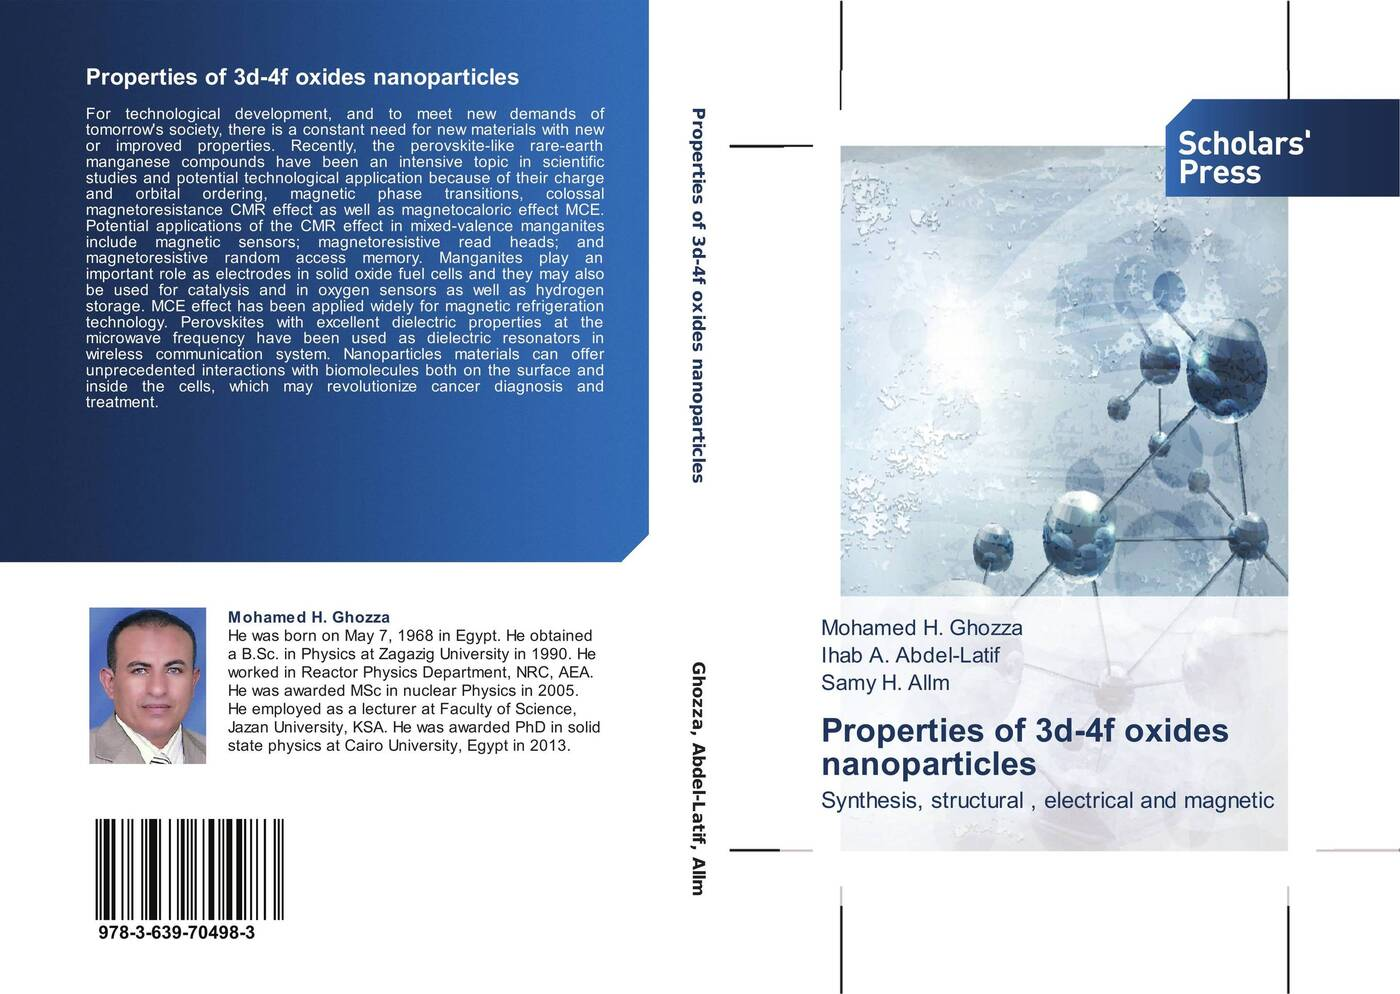 Mohamed H. Ghozza,Ihab A. Abdel-Latif and Samy H. Allm Properties of 3d-4f oxides nanoparticles magnetic and dielectric properties of materials